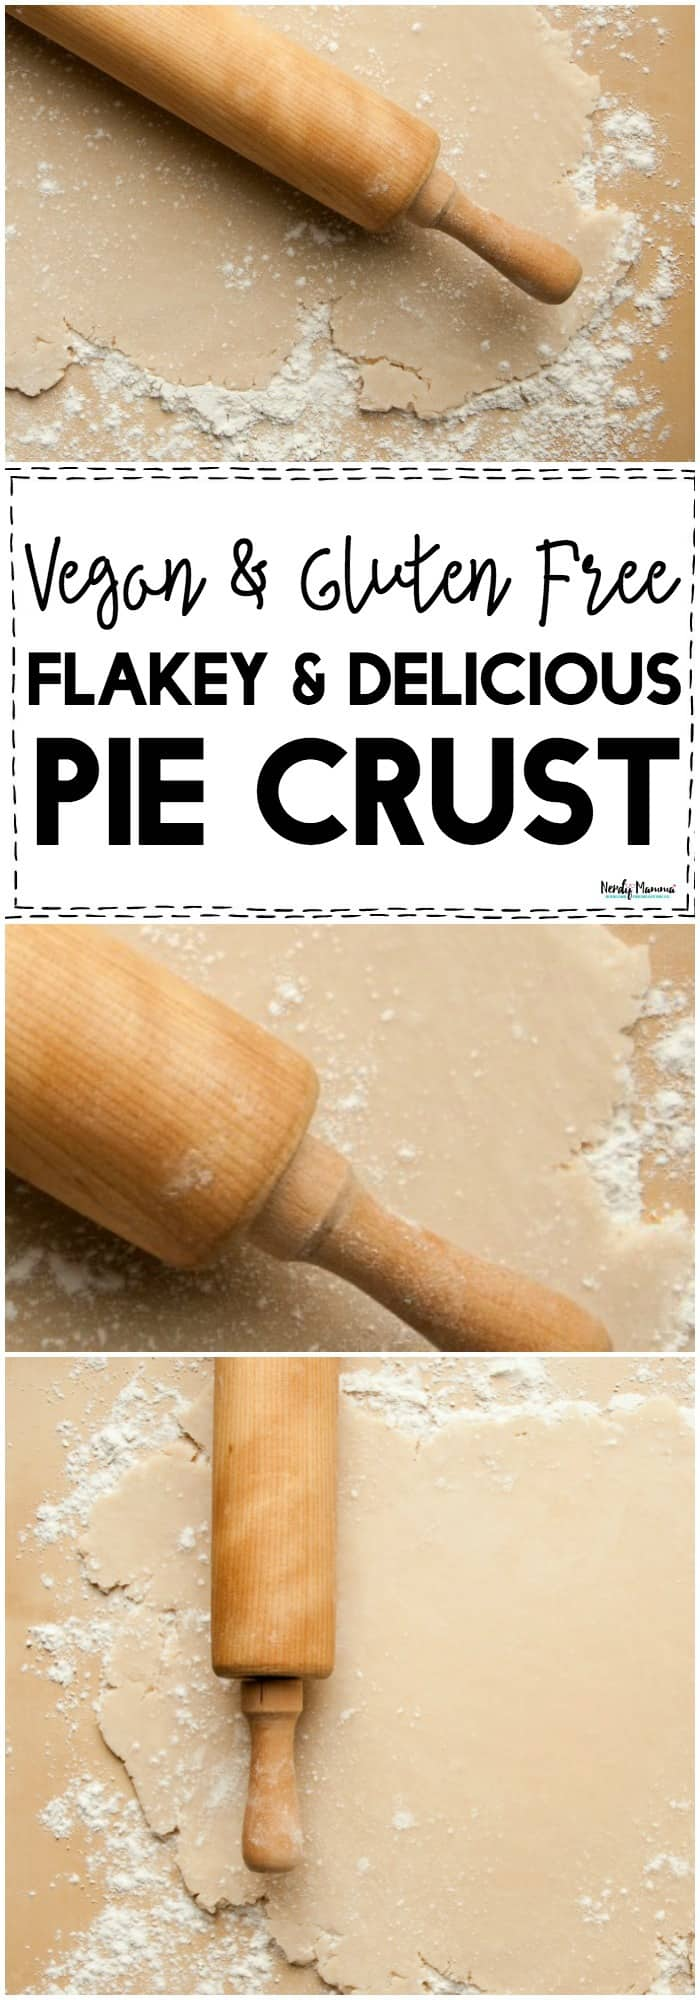 OMG, you've GOT to try this Flakey & Delicious VEGAN & GLUTEN FREE Pie Crust! Seriously, it SAVED my Thanksgiving! #glutenfree #piecrust #vegan #pie #Thanksgiving #recipes